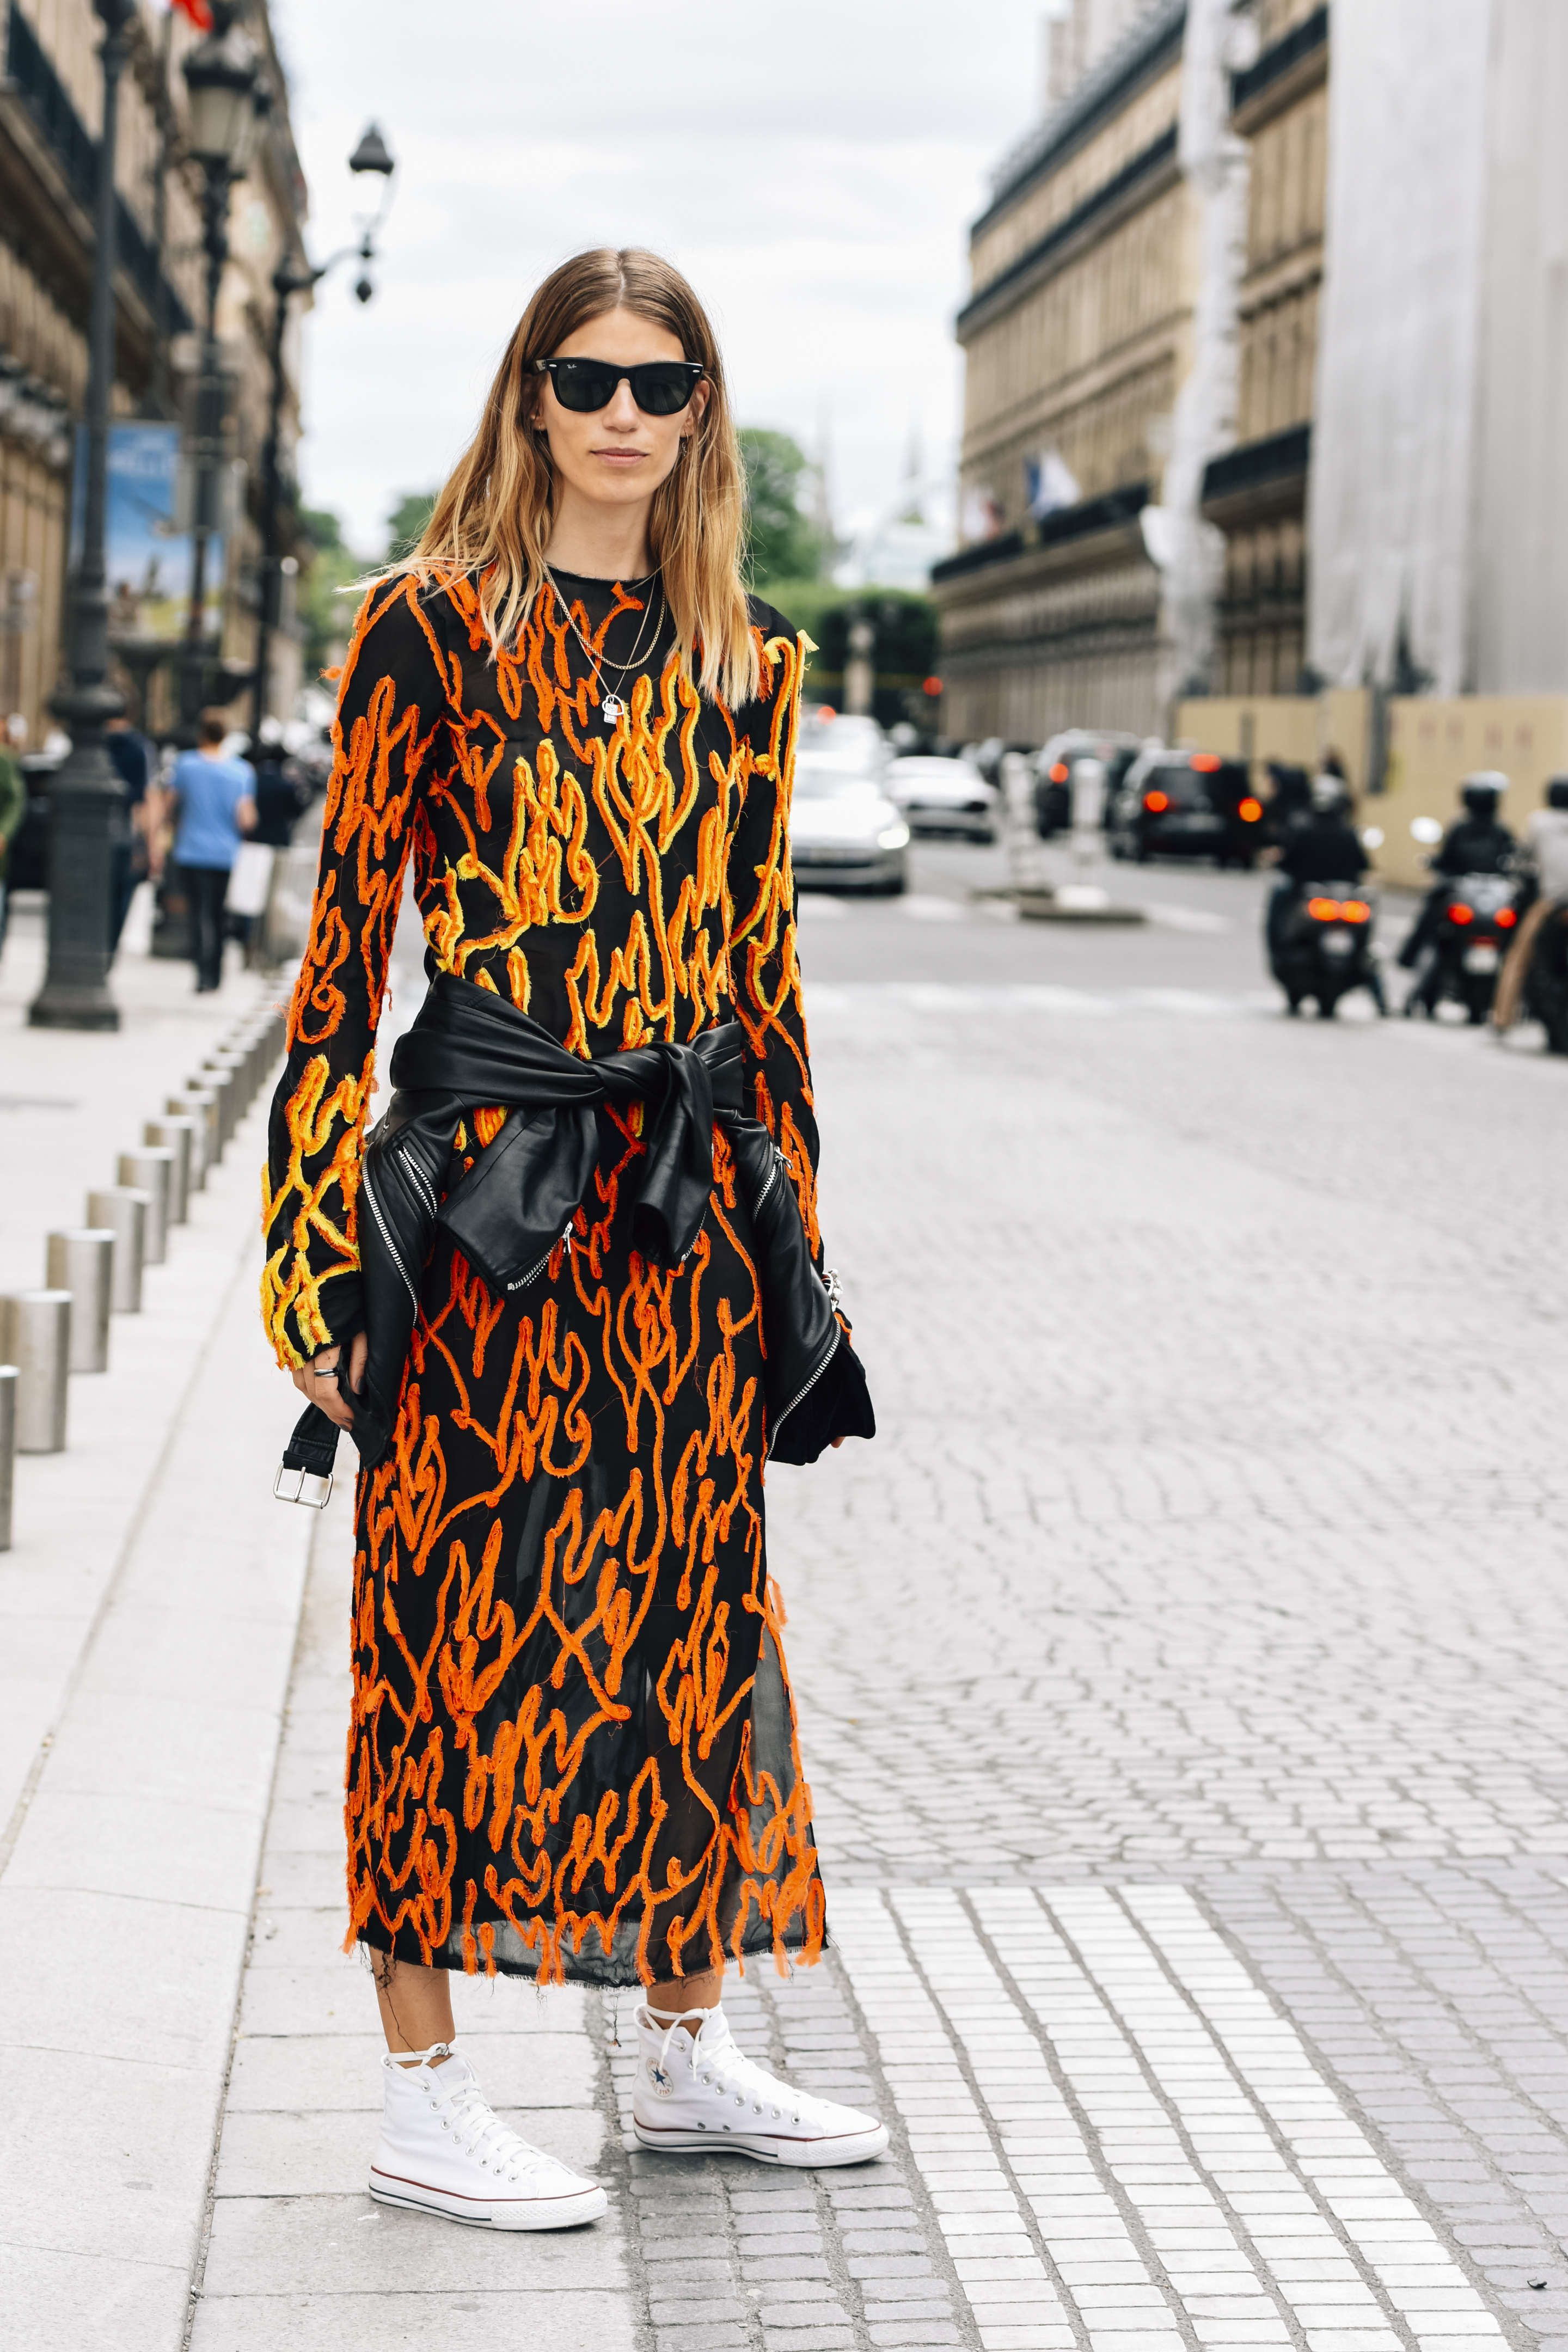 July 4, 2016  Tags Orange, Black, Sunglasses, White, Paris, Veronika Heilbrunner, Women, Prints, Leather Jackets, Frayed, Sneakers, Dresses, Necklaces, Converse, Acne Studios, Ray-Ban, Textured, 1 Person, FW16 Women's Couture